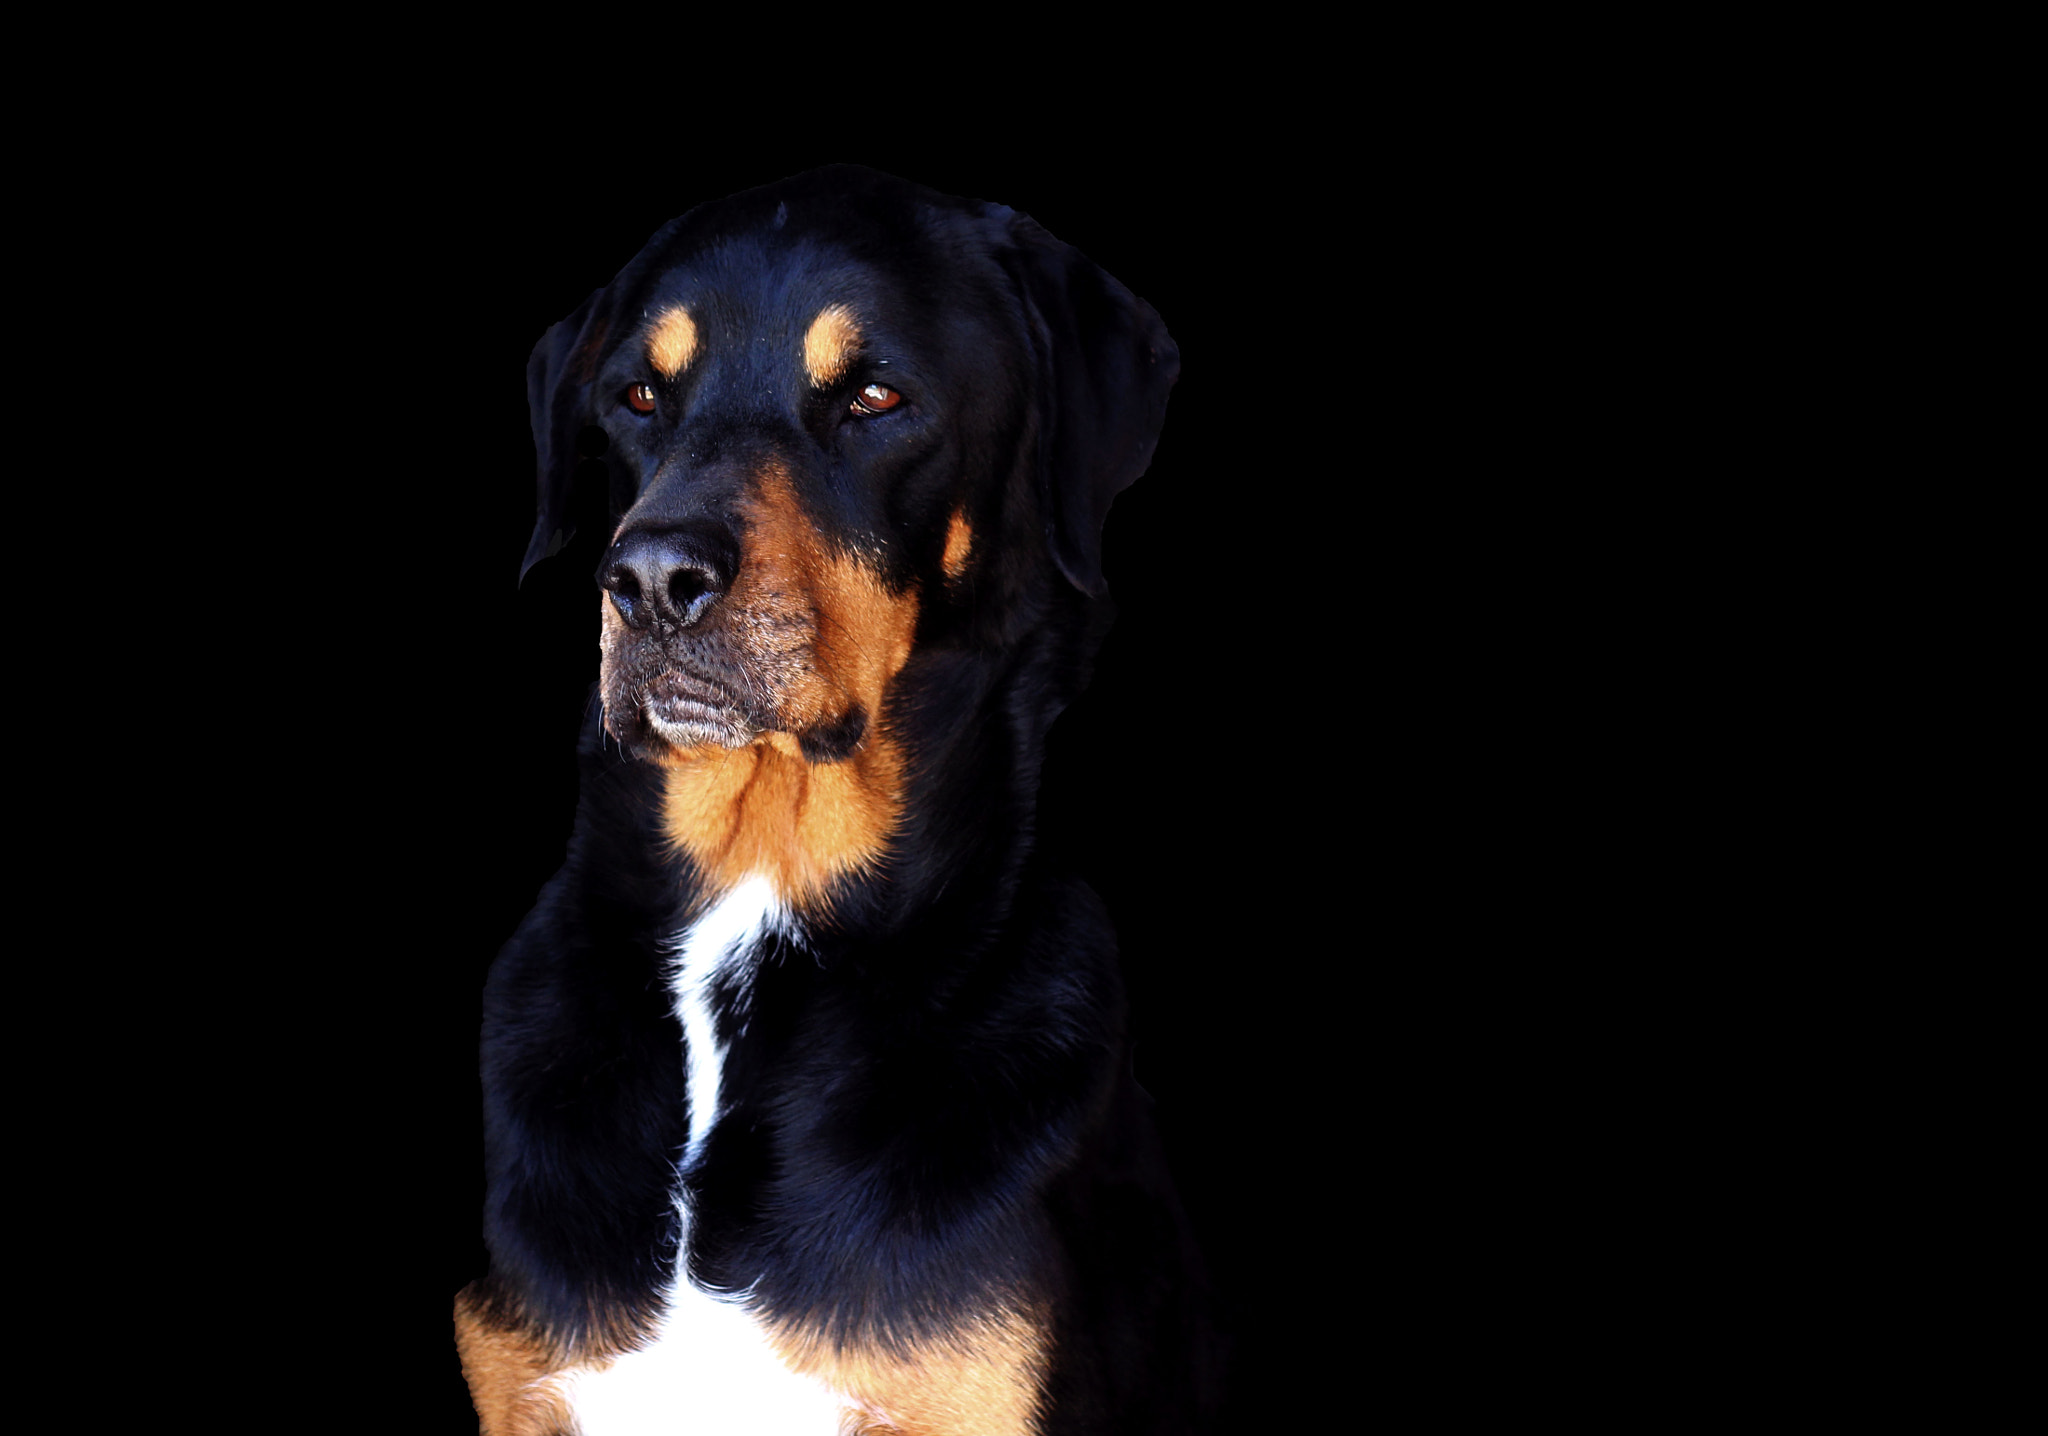 Photograph Rottweiler.  by Kaylin Raycraft on 500px